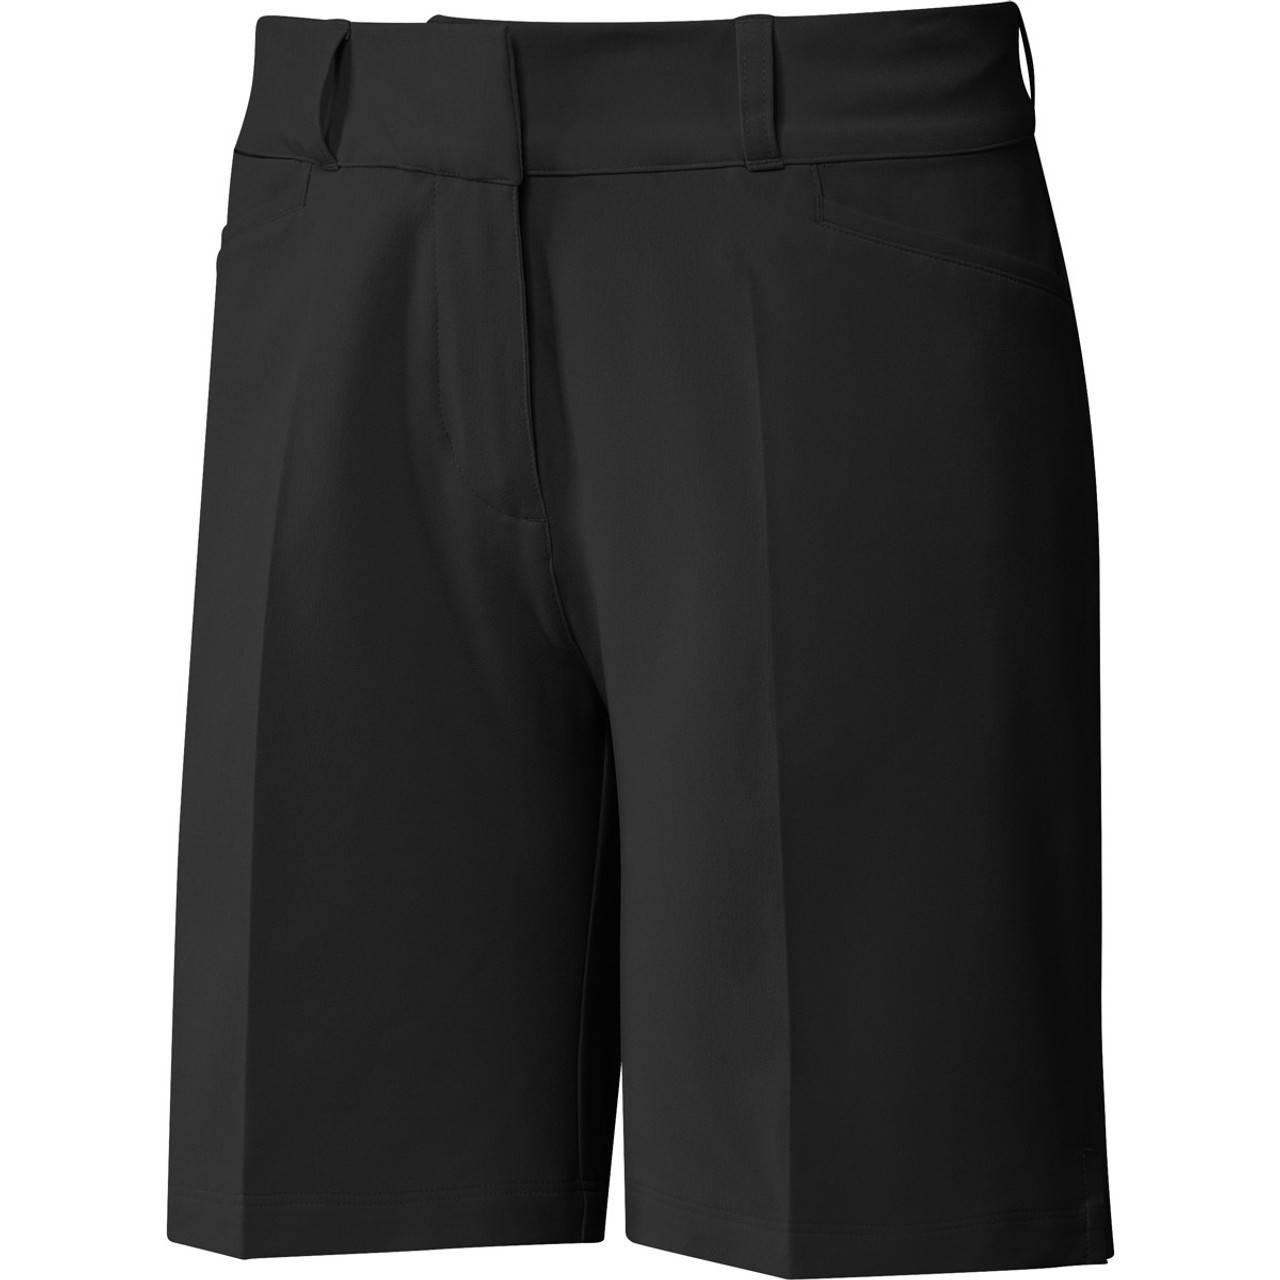 Adidas Womens 7 Inch Shorts - Black